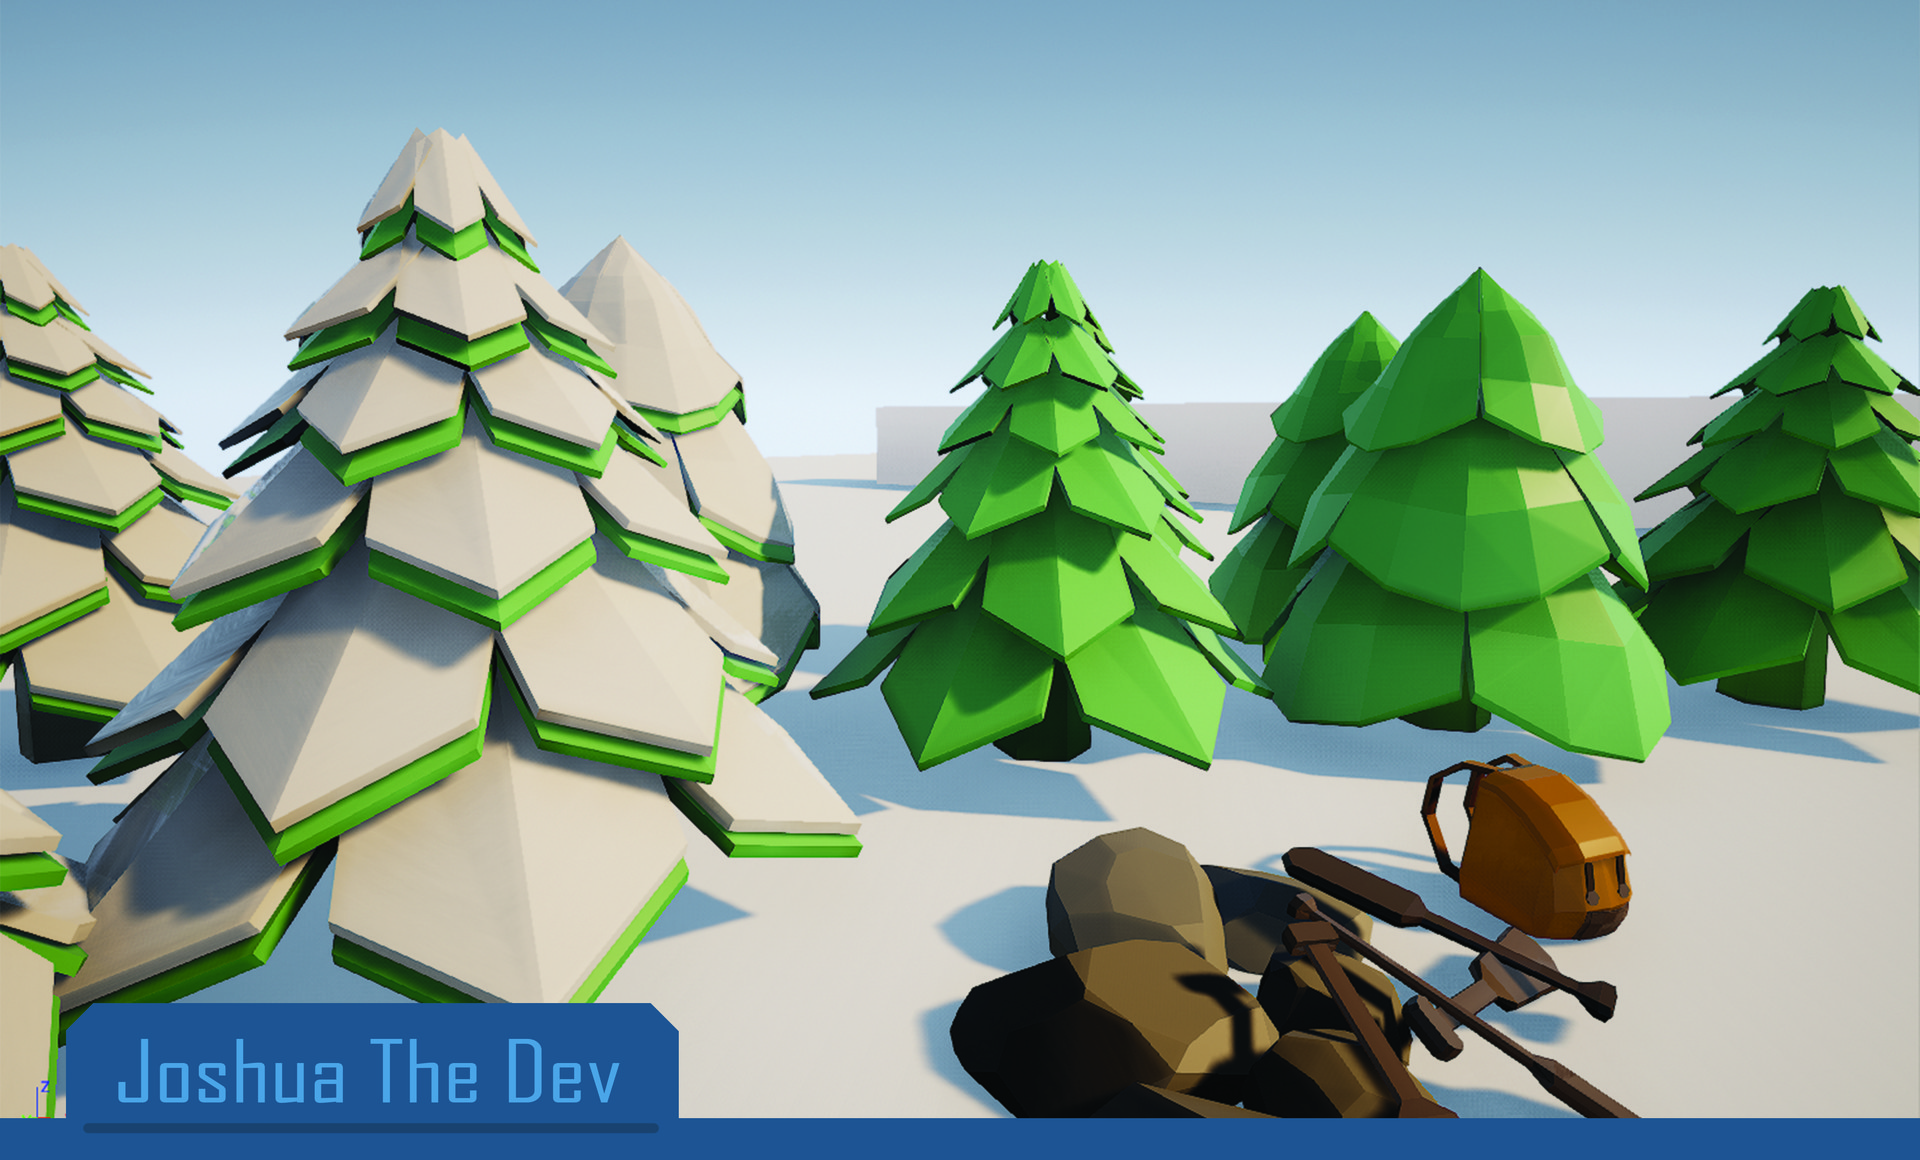 Hotel Dev Conifers Green Artstation Stylized Low Poly Environment Props Josh Garcia